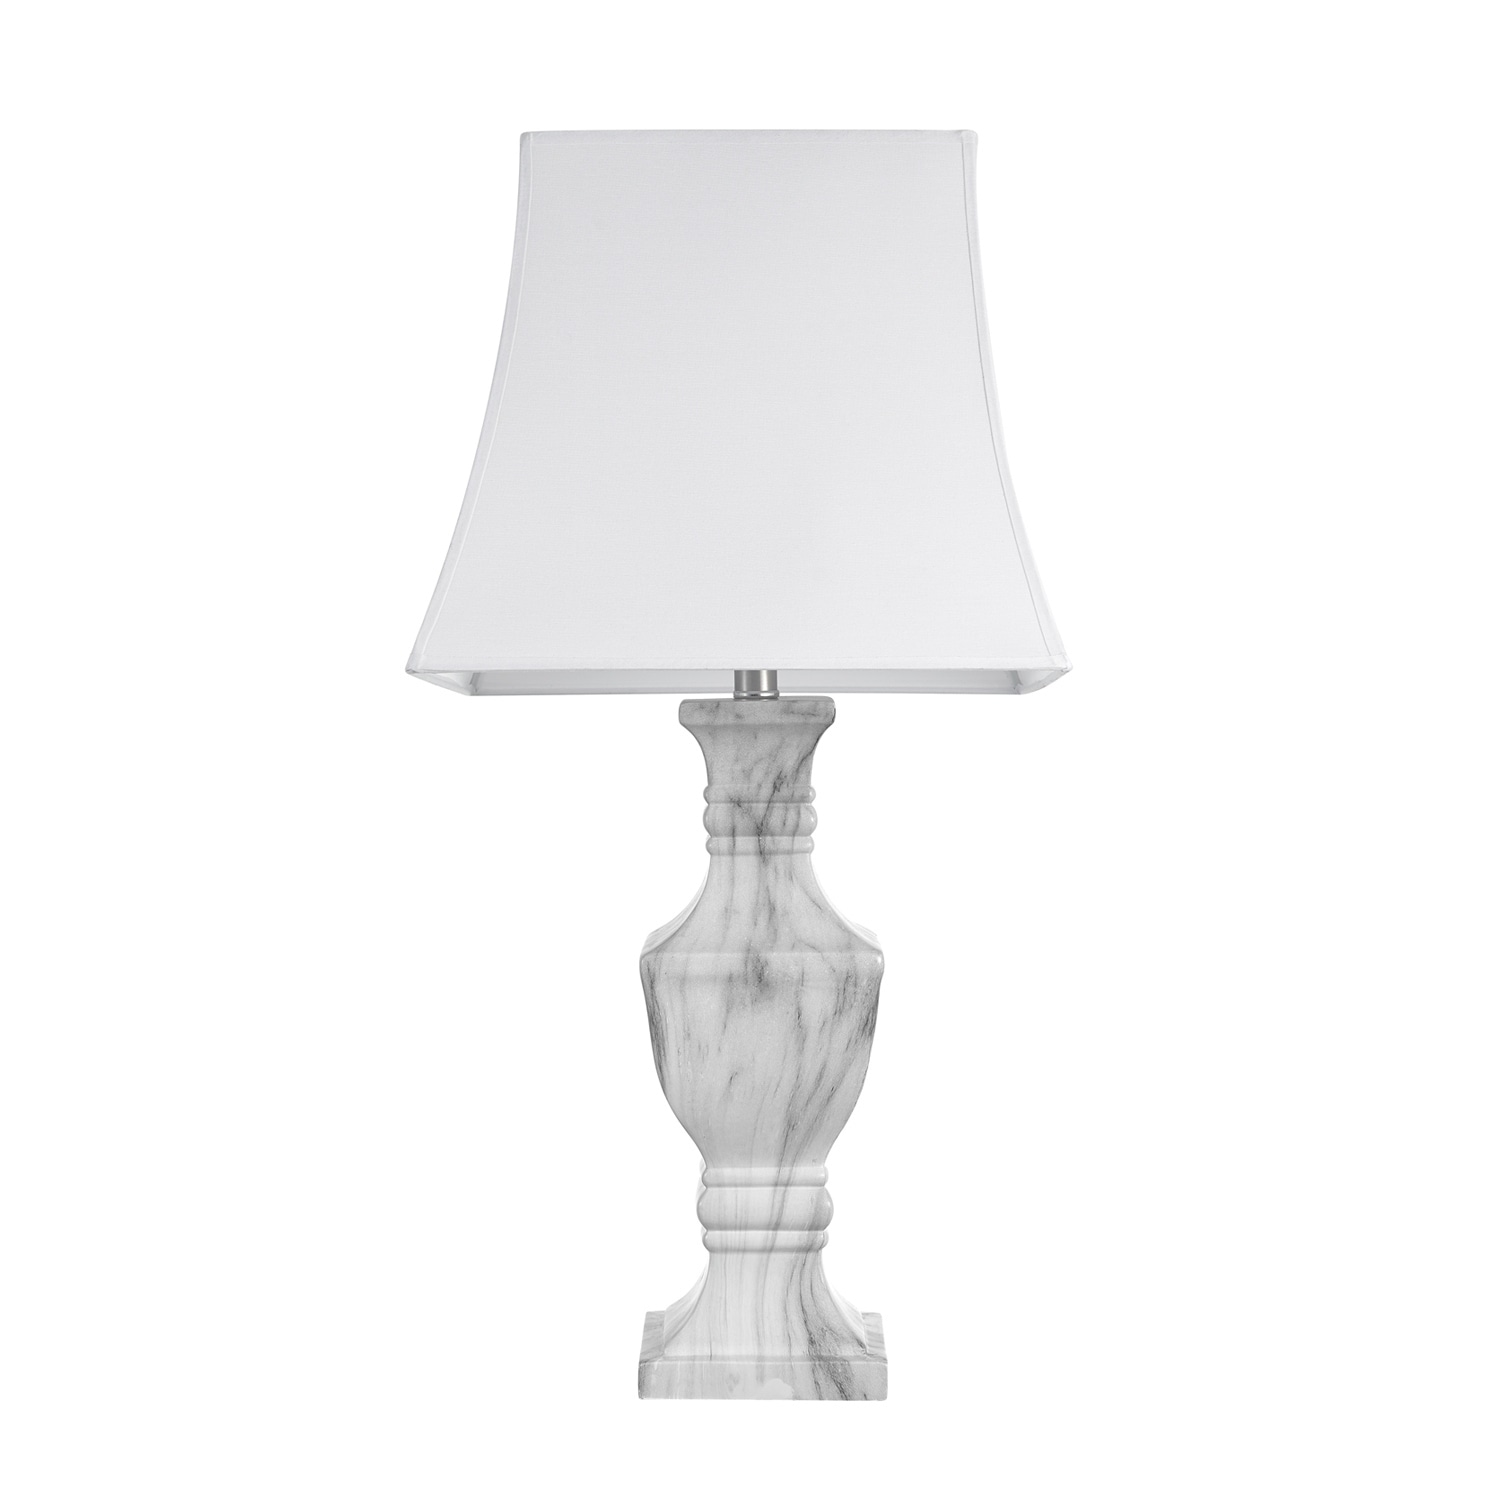 Athens 28 Table Lamp Marble Finish White Shade Led Bulb Included On Sale Overstock 22591960